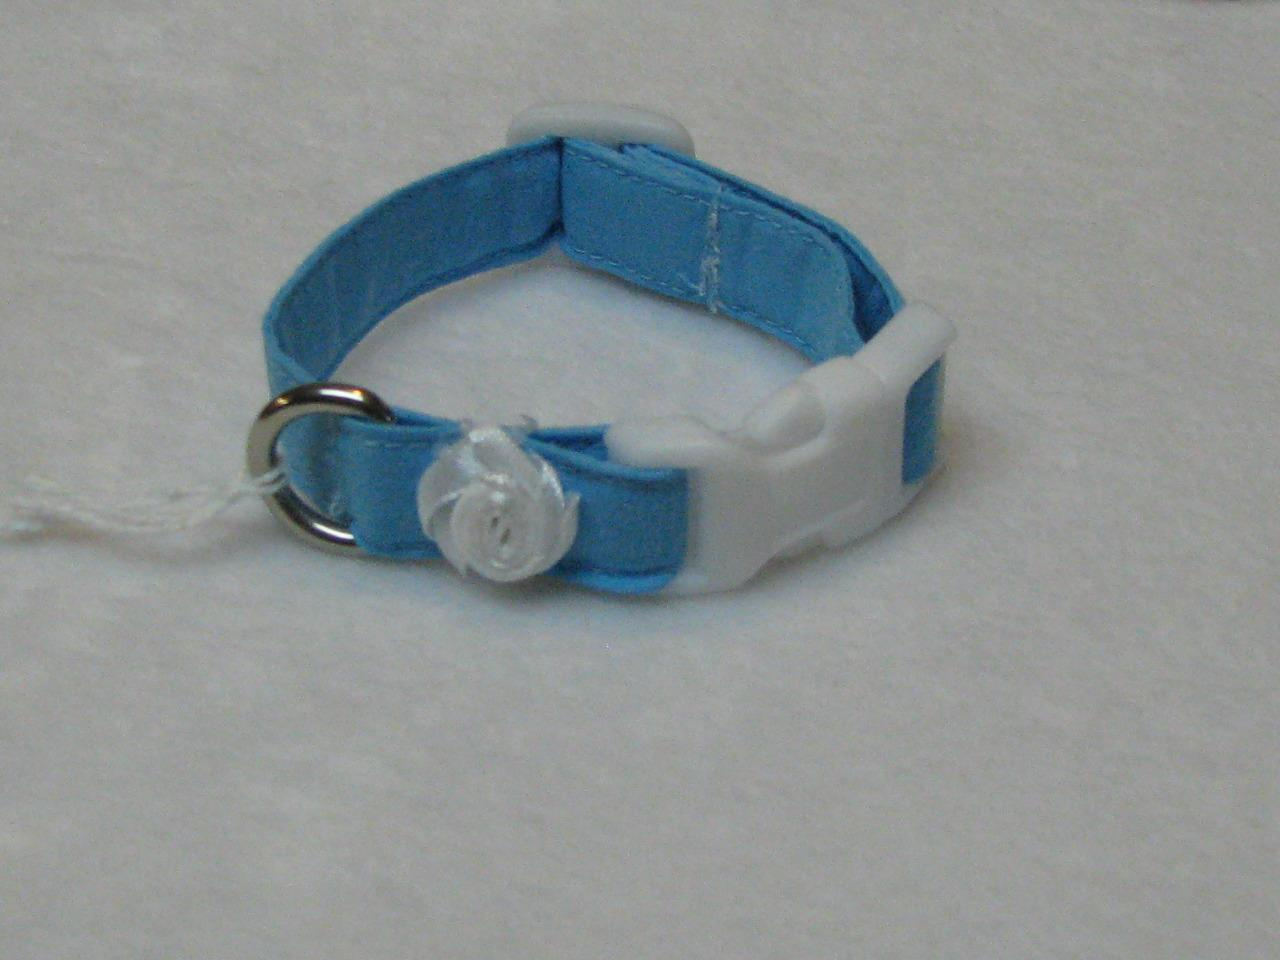 shih tzu collar summer blue pet accessories xxs dog collars maltese shih 8178